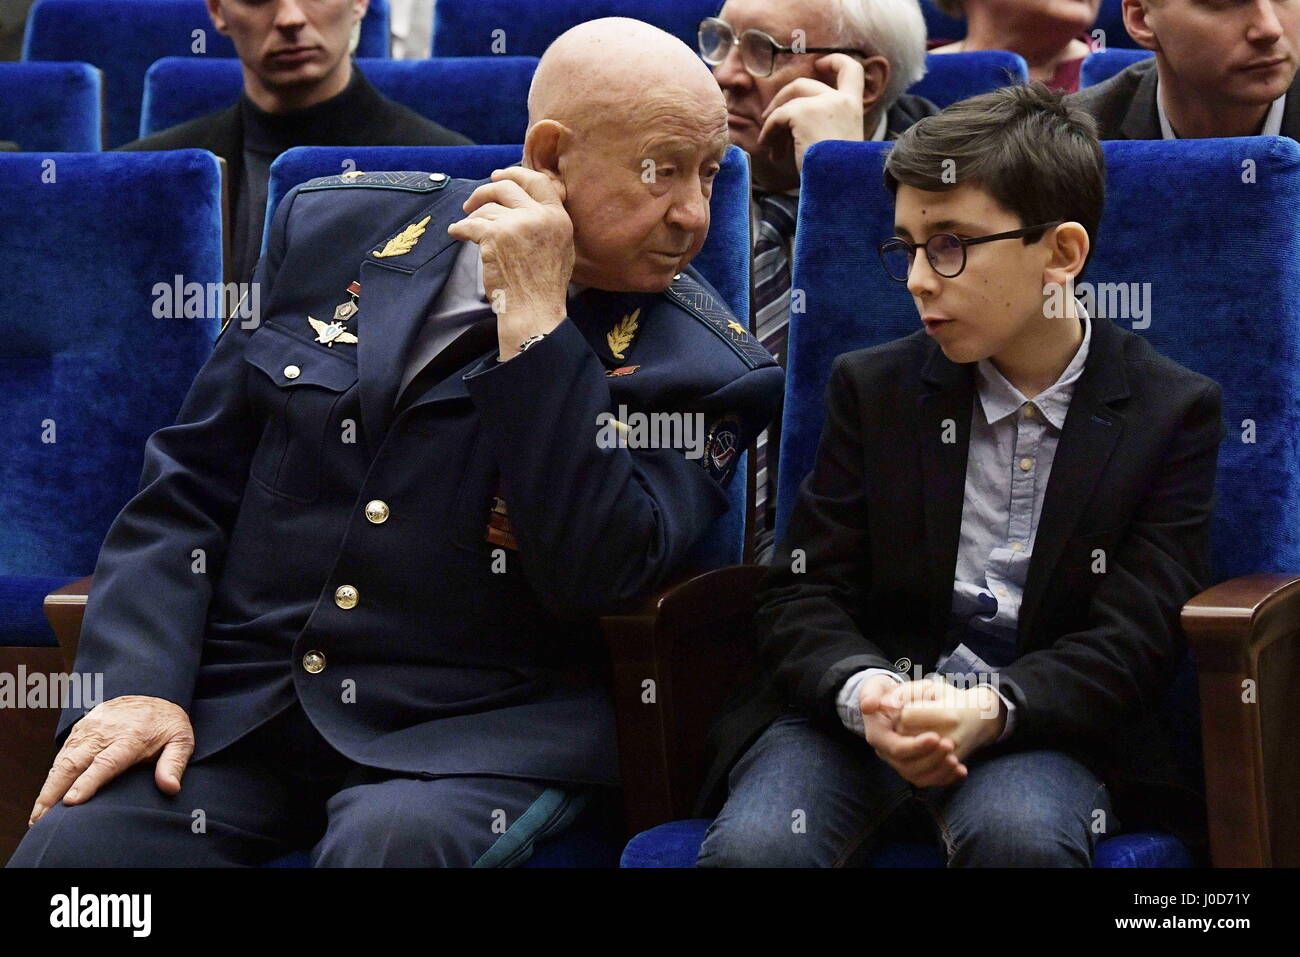 Moscow, Russia. 12th Apr, 2017. First cosmonaut to perform a spacewalk Alexei Leonov (L) attends an event marking - Stock Image